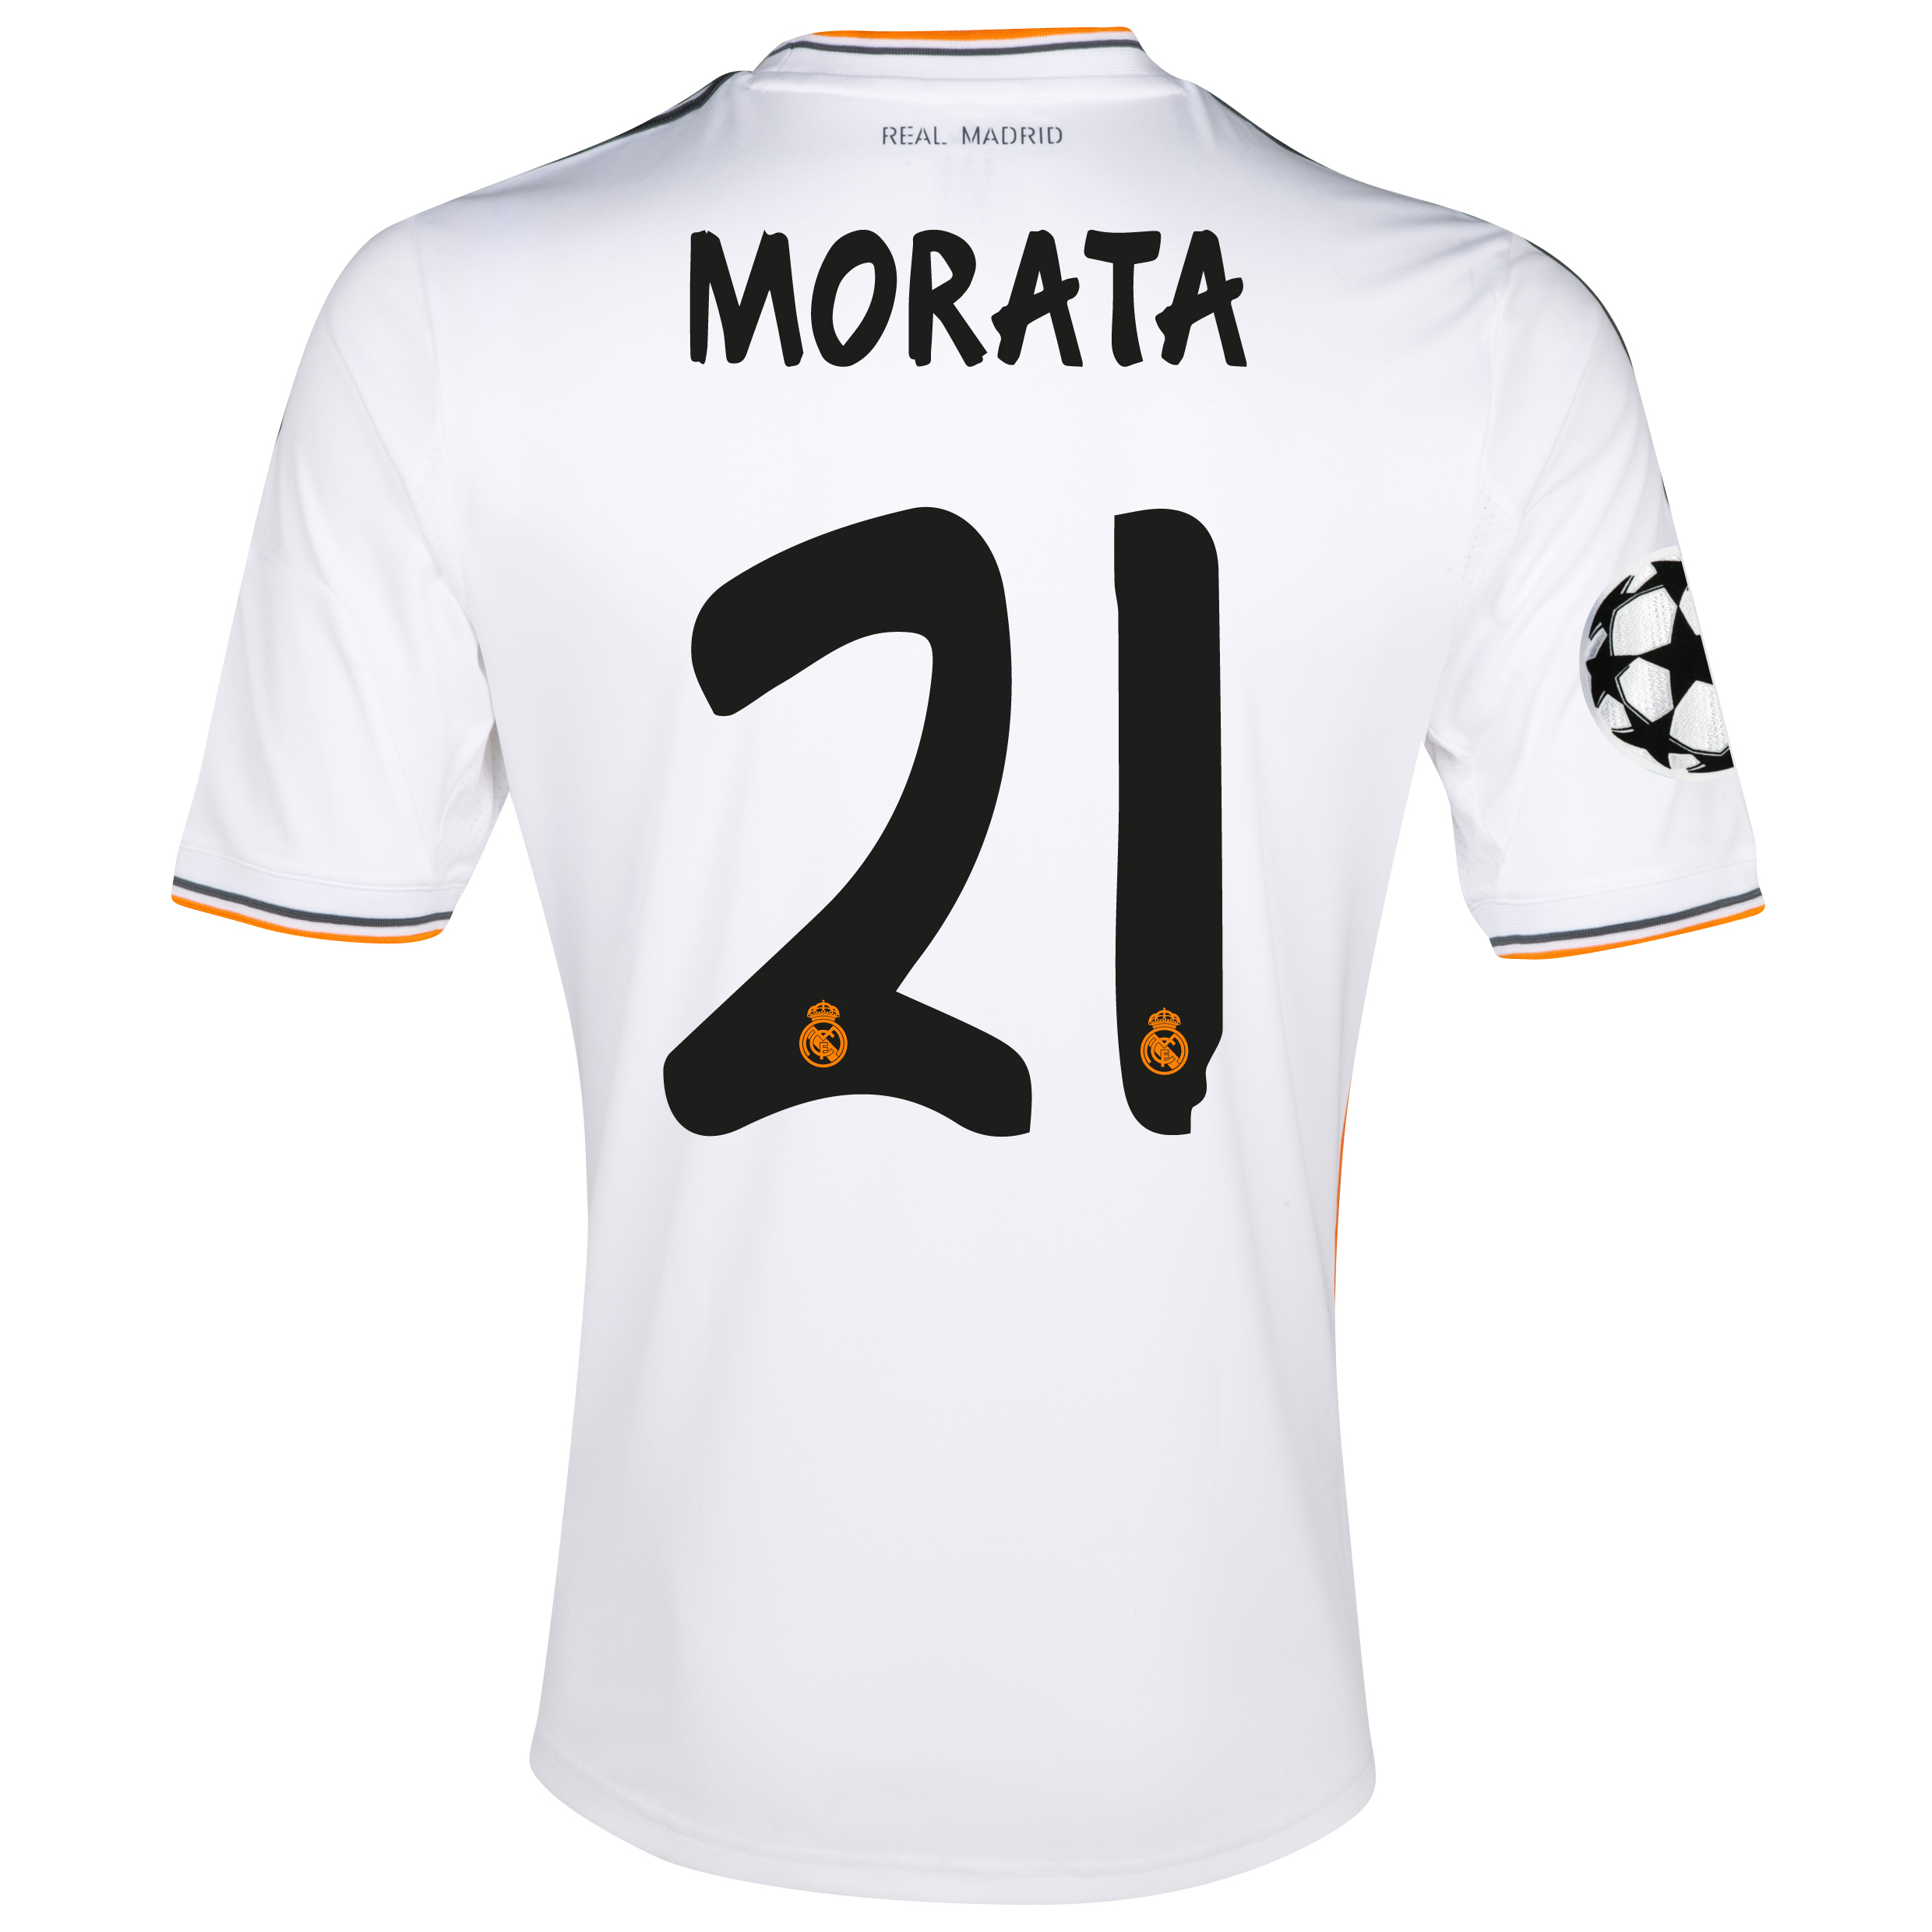 Real Madrid UEFA Champions League Home Shirt 2013/14 with Morata 21 printing